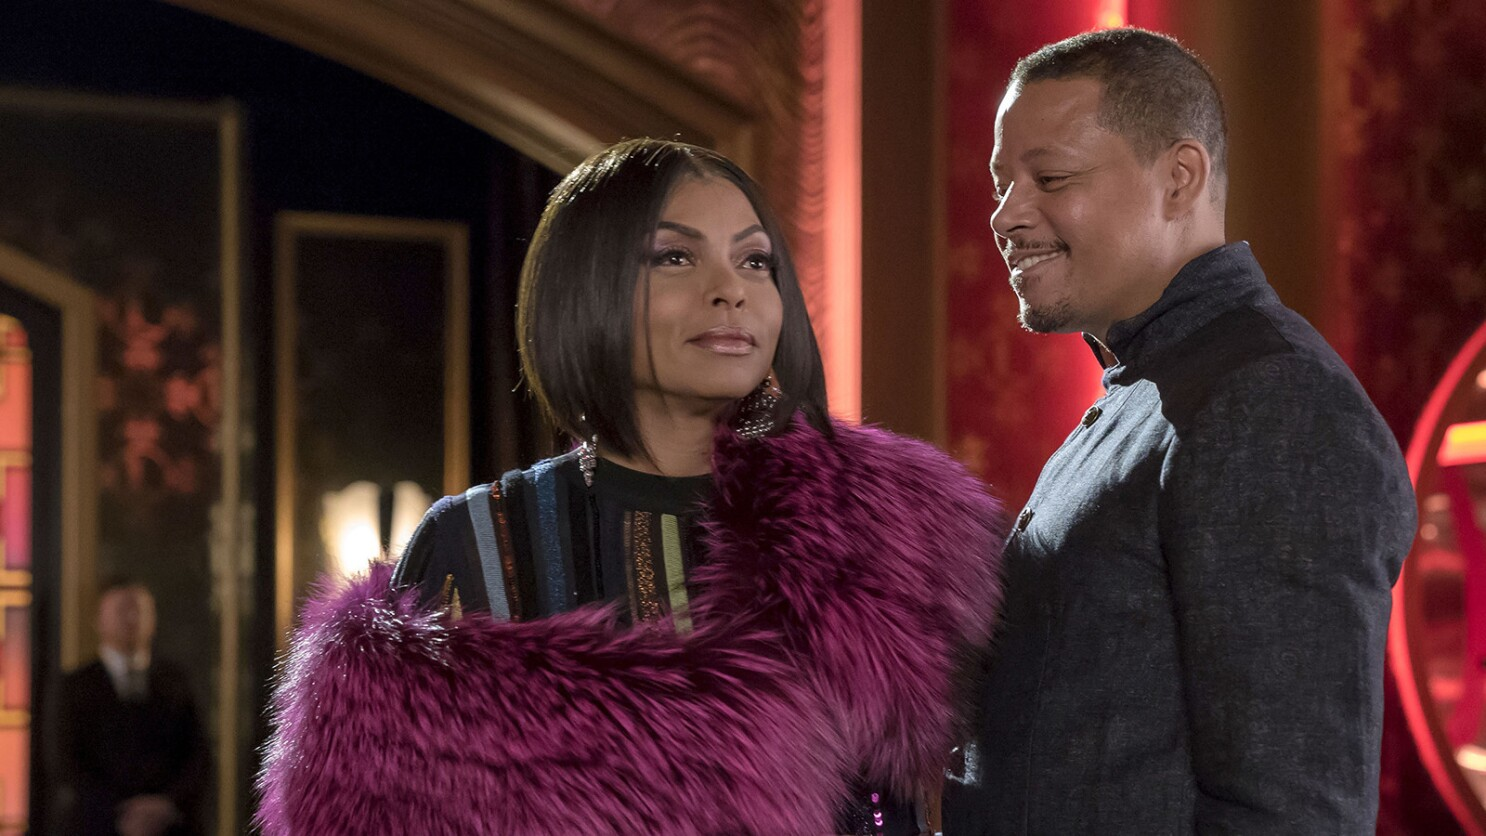 Alvin Purple Tv Series Download wednesday's tv highlights: 'empire' on fox - los angeles times